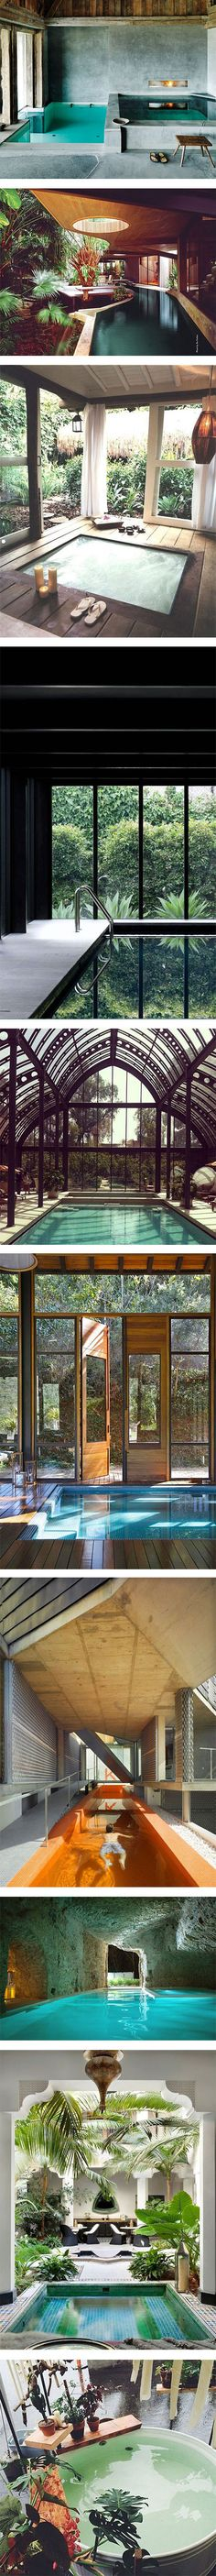 10 amazing indoor pools you'd love to have at home